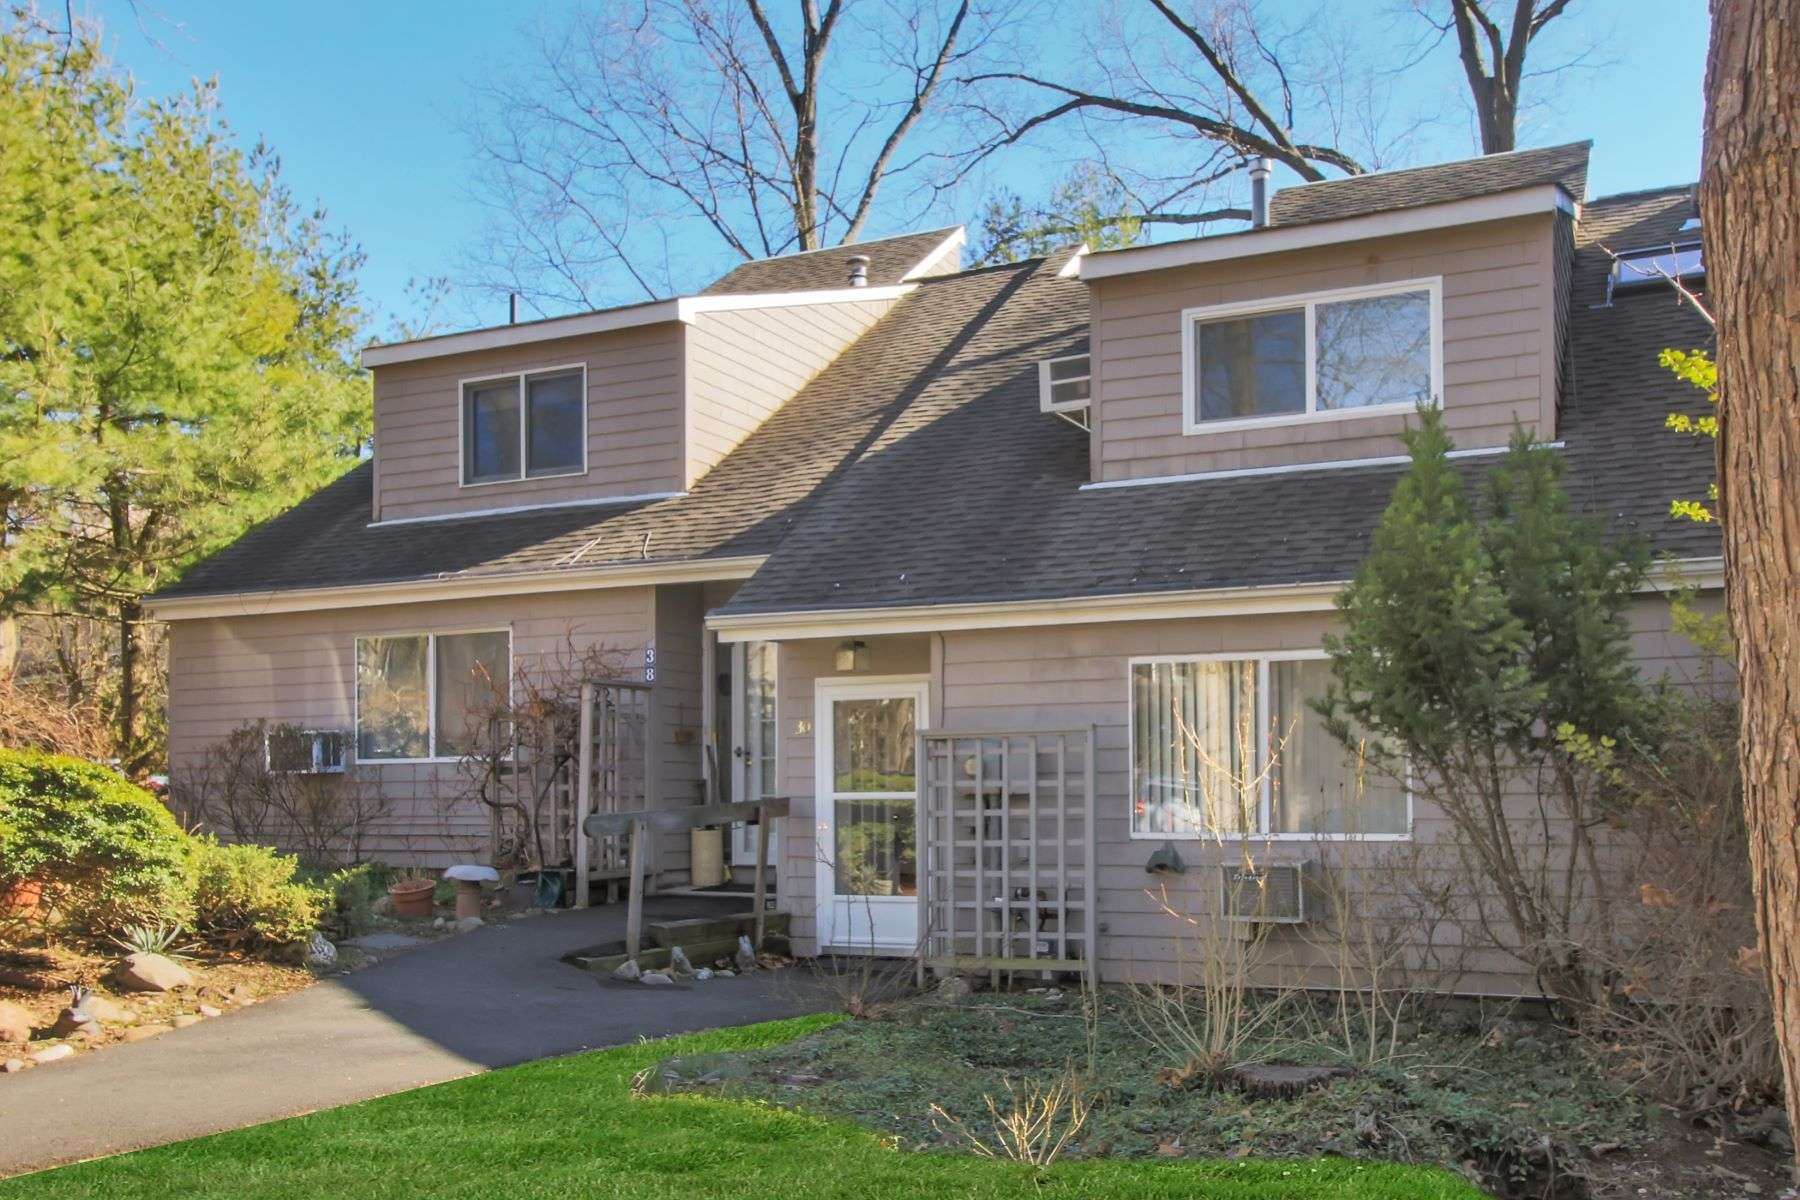 Condominium for Sale at Unique Hickory Hill 30 Hickory Hill Lane Tappan, New York, 10983 United States